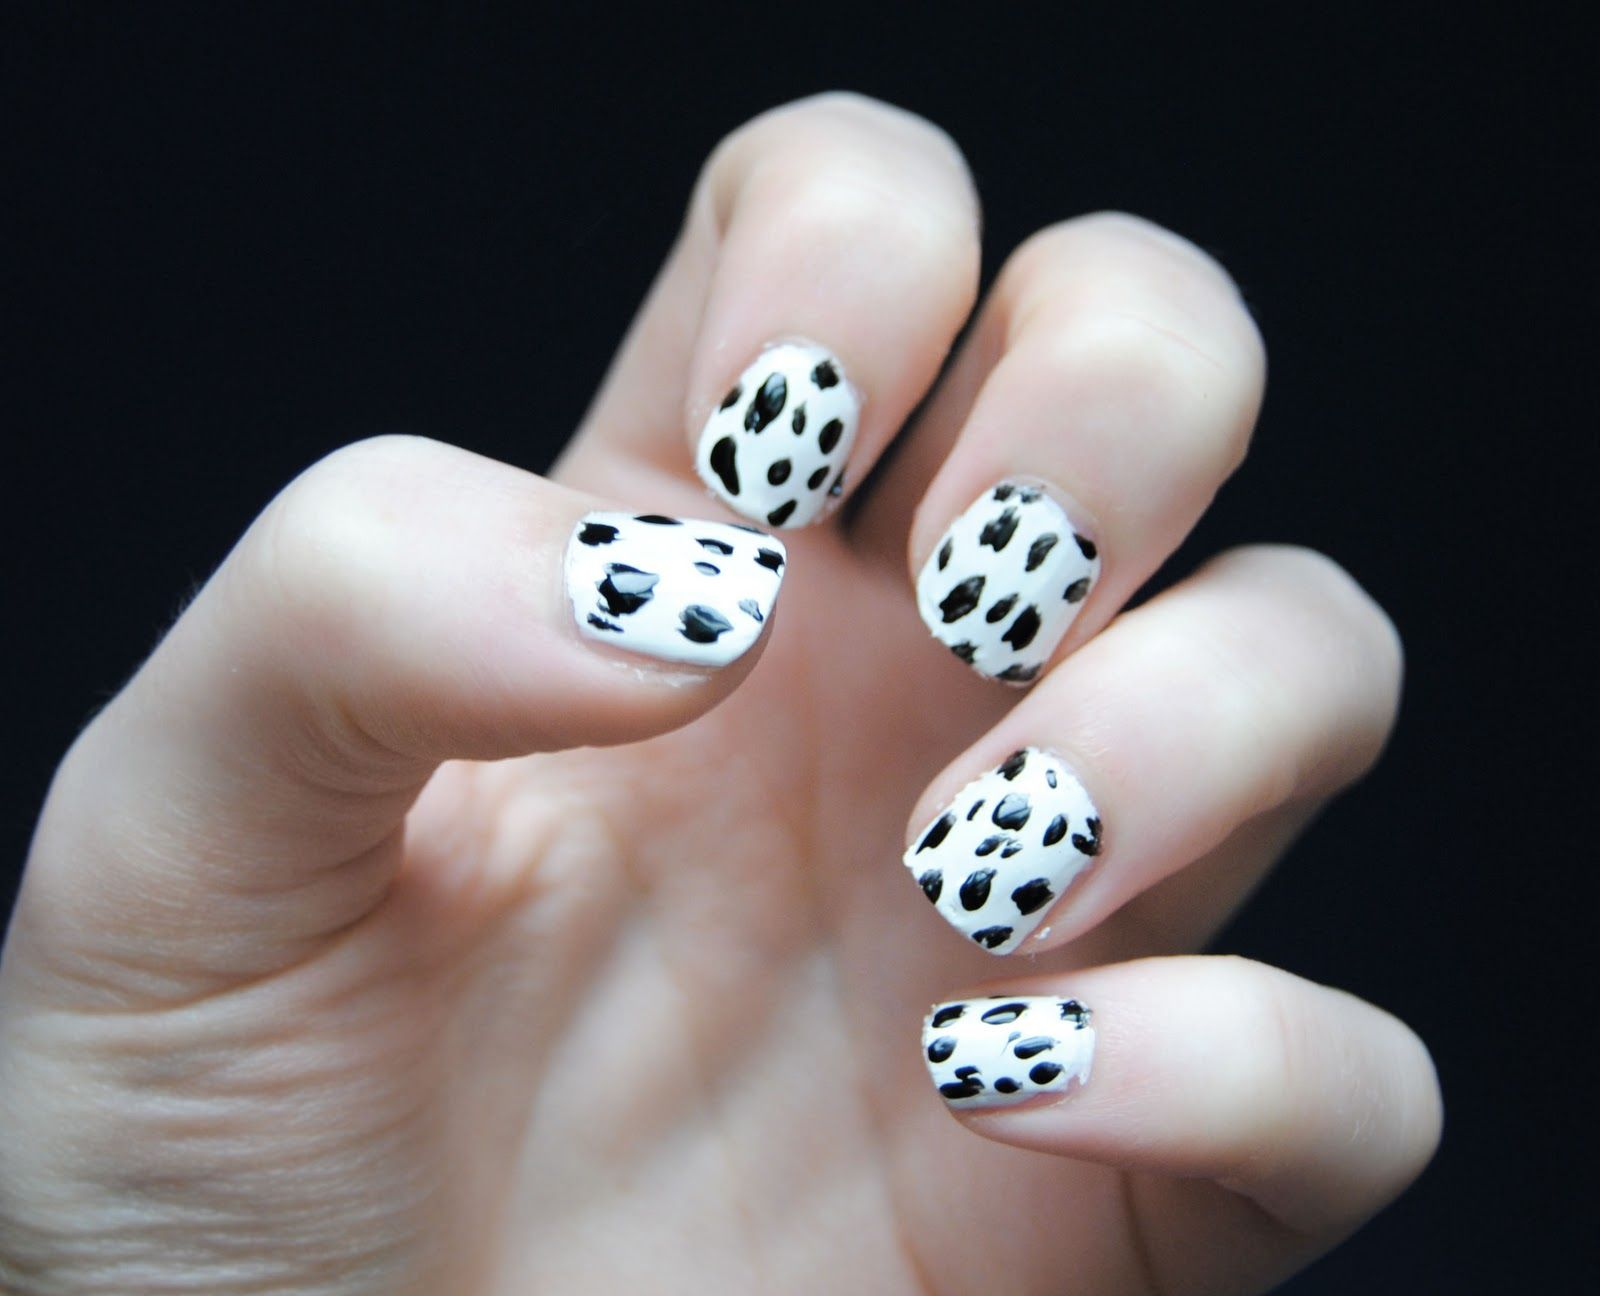 Dalmatian Nails | Fashion | Pinterest | Dalmatian